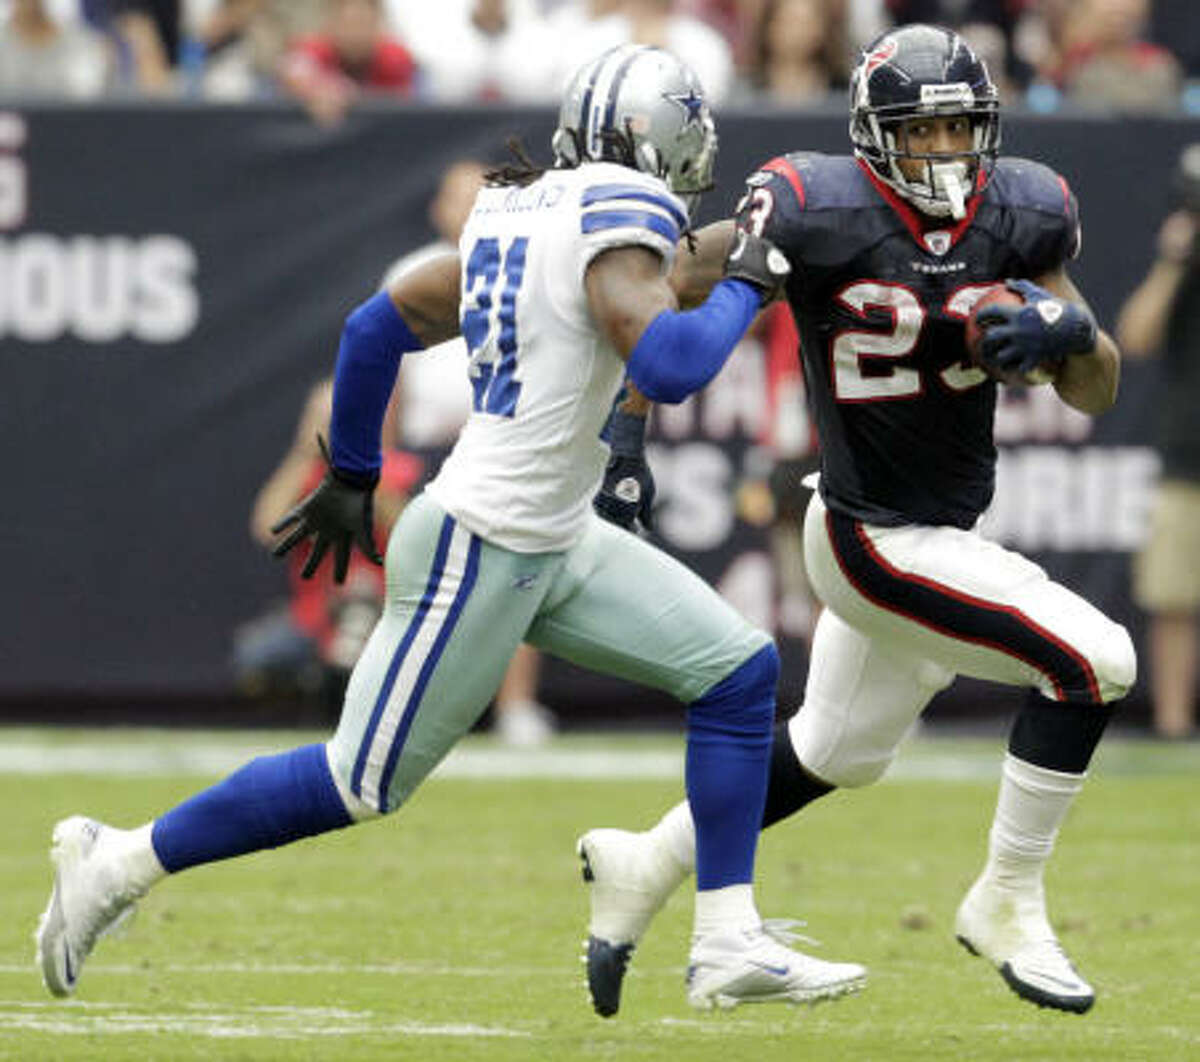 Texans running back Arian Foster runs for a first down against the Cowboys' Mike Jenkins on Sunday.